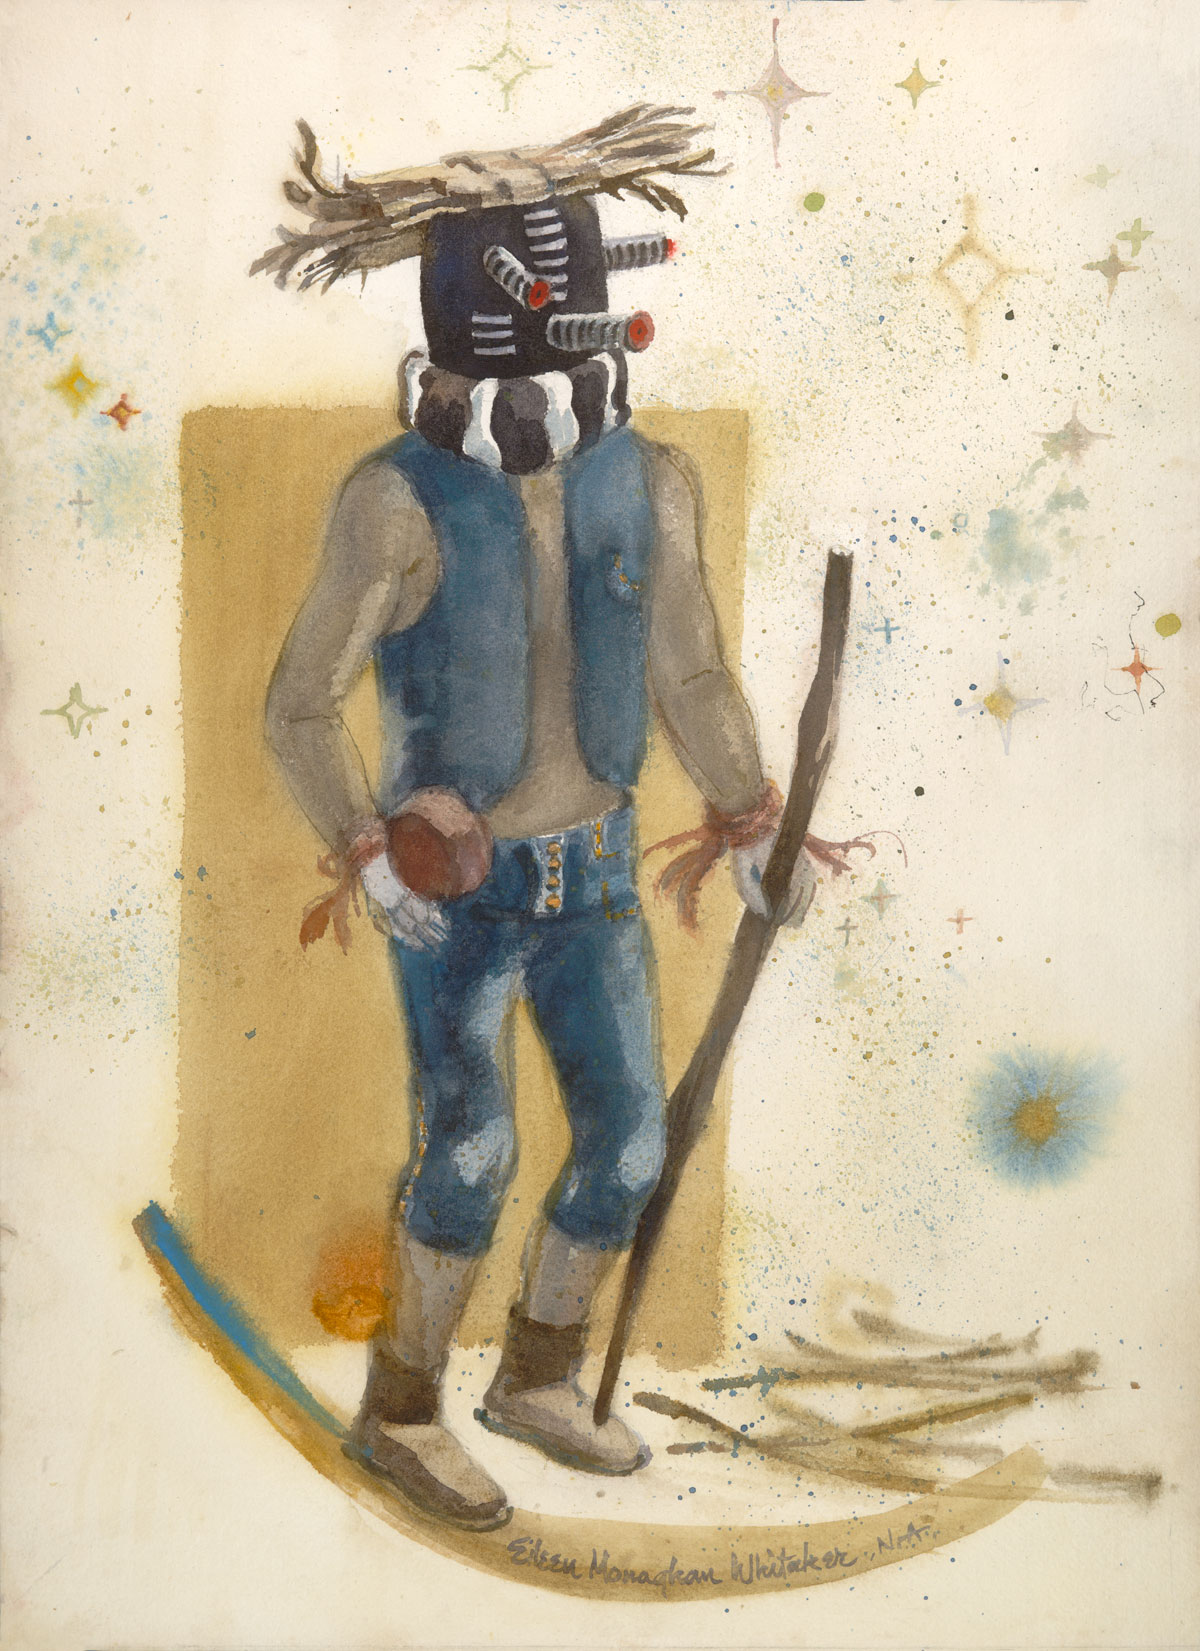 """Kachina Mocking"" 1983 © Eileen Monaghan Whitaker 22x16 Watercolor"